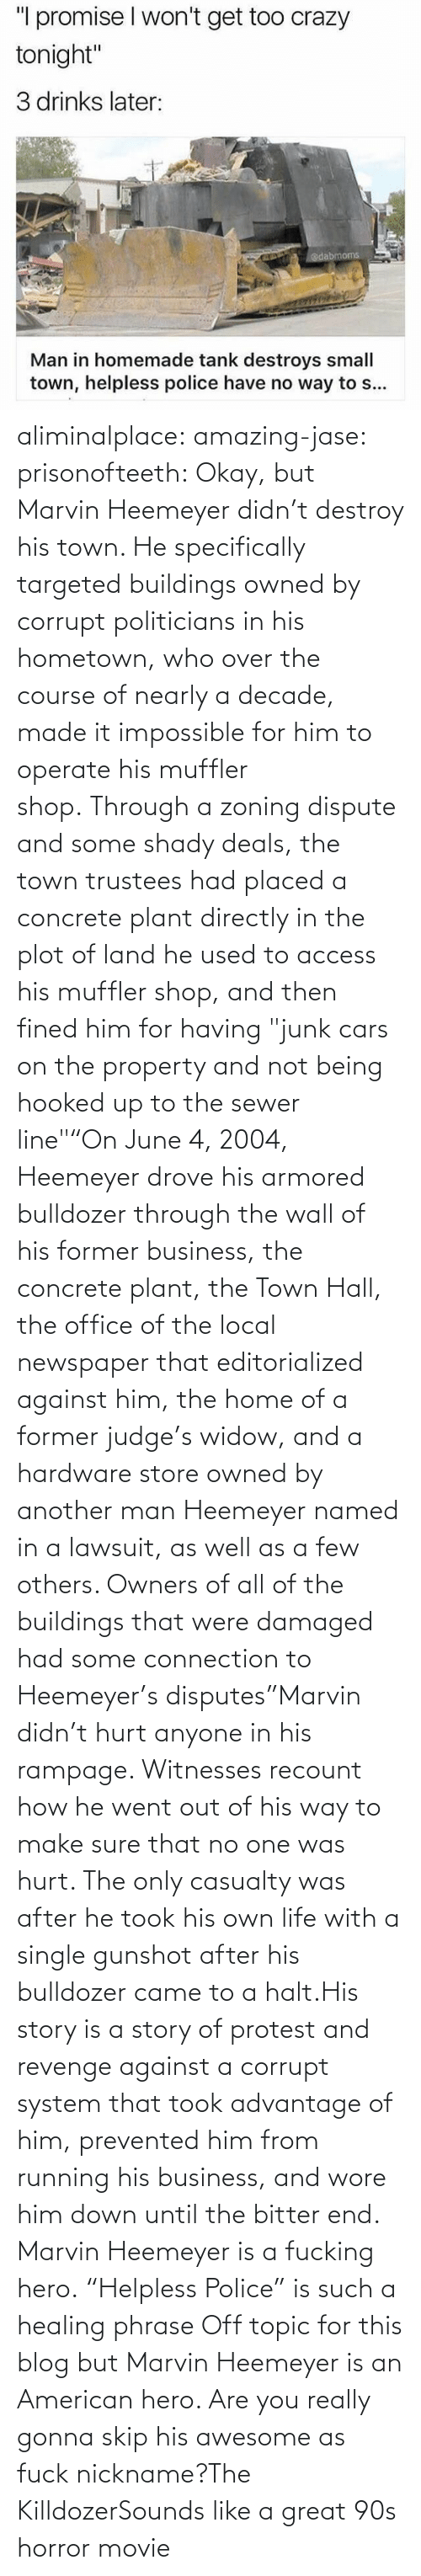 "horror: aliminalplace: amazing-jase:  prisonofteeth: Okay, but Marvin Heemeyer didn't destroy his town. He specifically targeted buildings owned by corrupt politicians in his hometown, who over the course of nearly a decade, made it impossible for him to operate his muffler shop. Through a zoning dispute and some shady deals, the town trustees had placed a concrete plant directly in the plot of land he used to access his muffler shop, and then fined him for having ""junk cars on the property and not being hooked up to the sewer line""""On June 4, 2004, Heemeyer drove his armored bulldozer through the wall of his former business, the concrete plant, the Town Hall, the office of the local newspaper that editorialized against him, the home of a former judge's widow, and a hardware store owned by another man Heemeyer named in a lawsuit, as well as a few others. Owners of all of the buildings that were damaged had some connection to Heemeyer's disputes""Marvin didn't hurt anyone in his rampage. Witnesses recount how he went out of his way to make sure that no one was hurt. The only casualty was after he took his own life with a single gunshot after his bulldozer came to a halt.His story is a story of protest and revenge against a corrupt system that took advantage of him, prevented him from running his business, and wore him down until the bitter end. Marvin Heemeyer is a fucking hero. ""Helpless Police"" is such a healing phrase    Off topic for this blog but Marvin Heemeyer is an American hero.     Are you really gonna skip his awesome as fuck nickname?The KilldozerSounds like a great 90s horror movie"